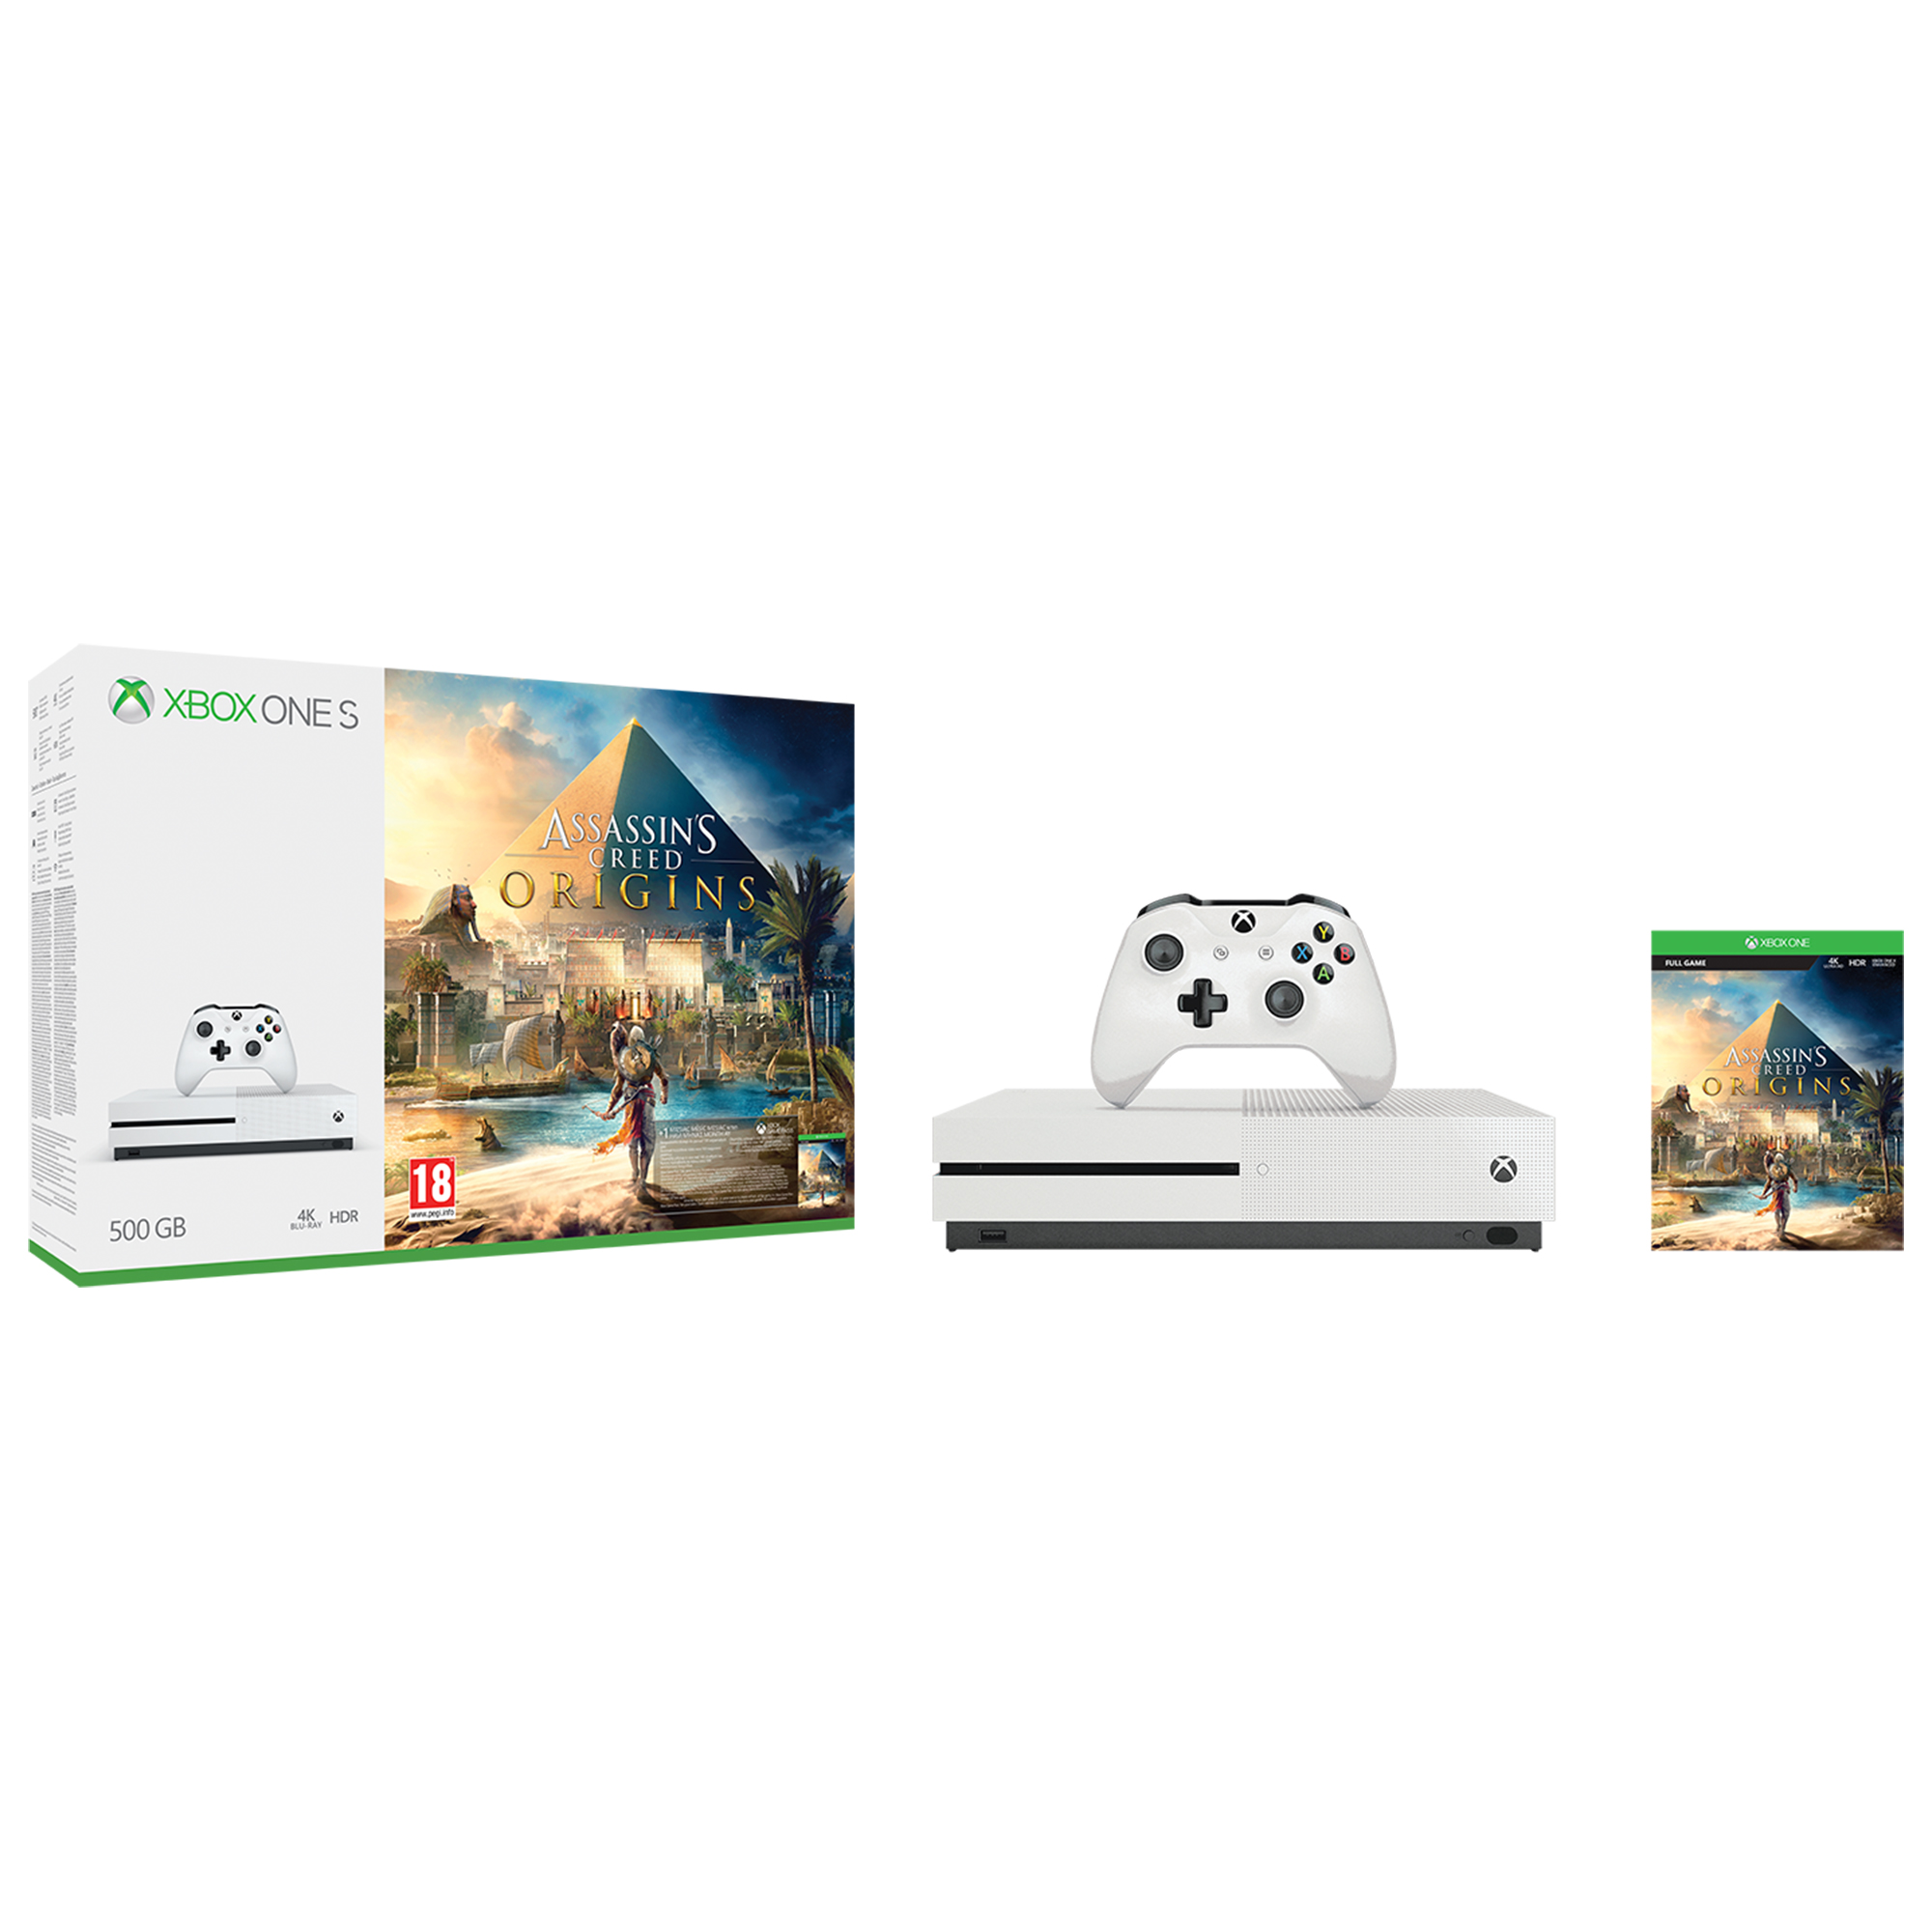 Xbox One S 500GB + Assasin's Creed: Origins